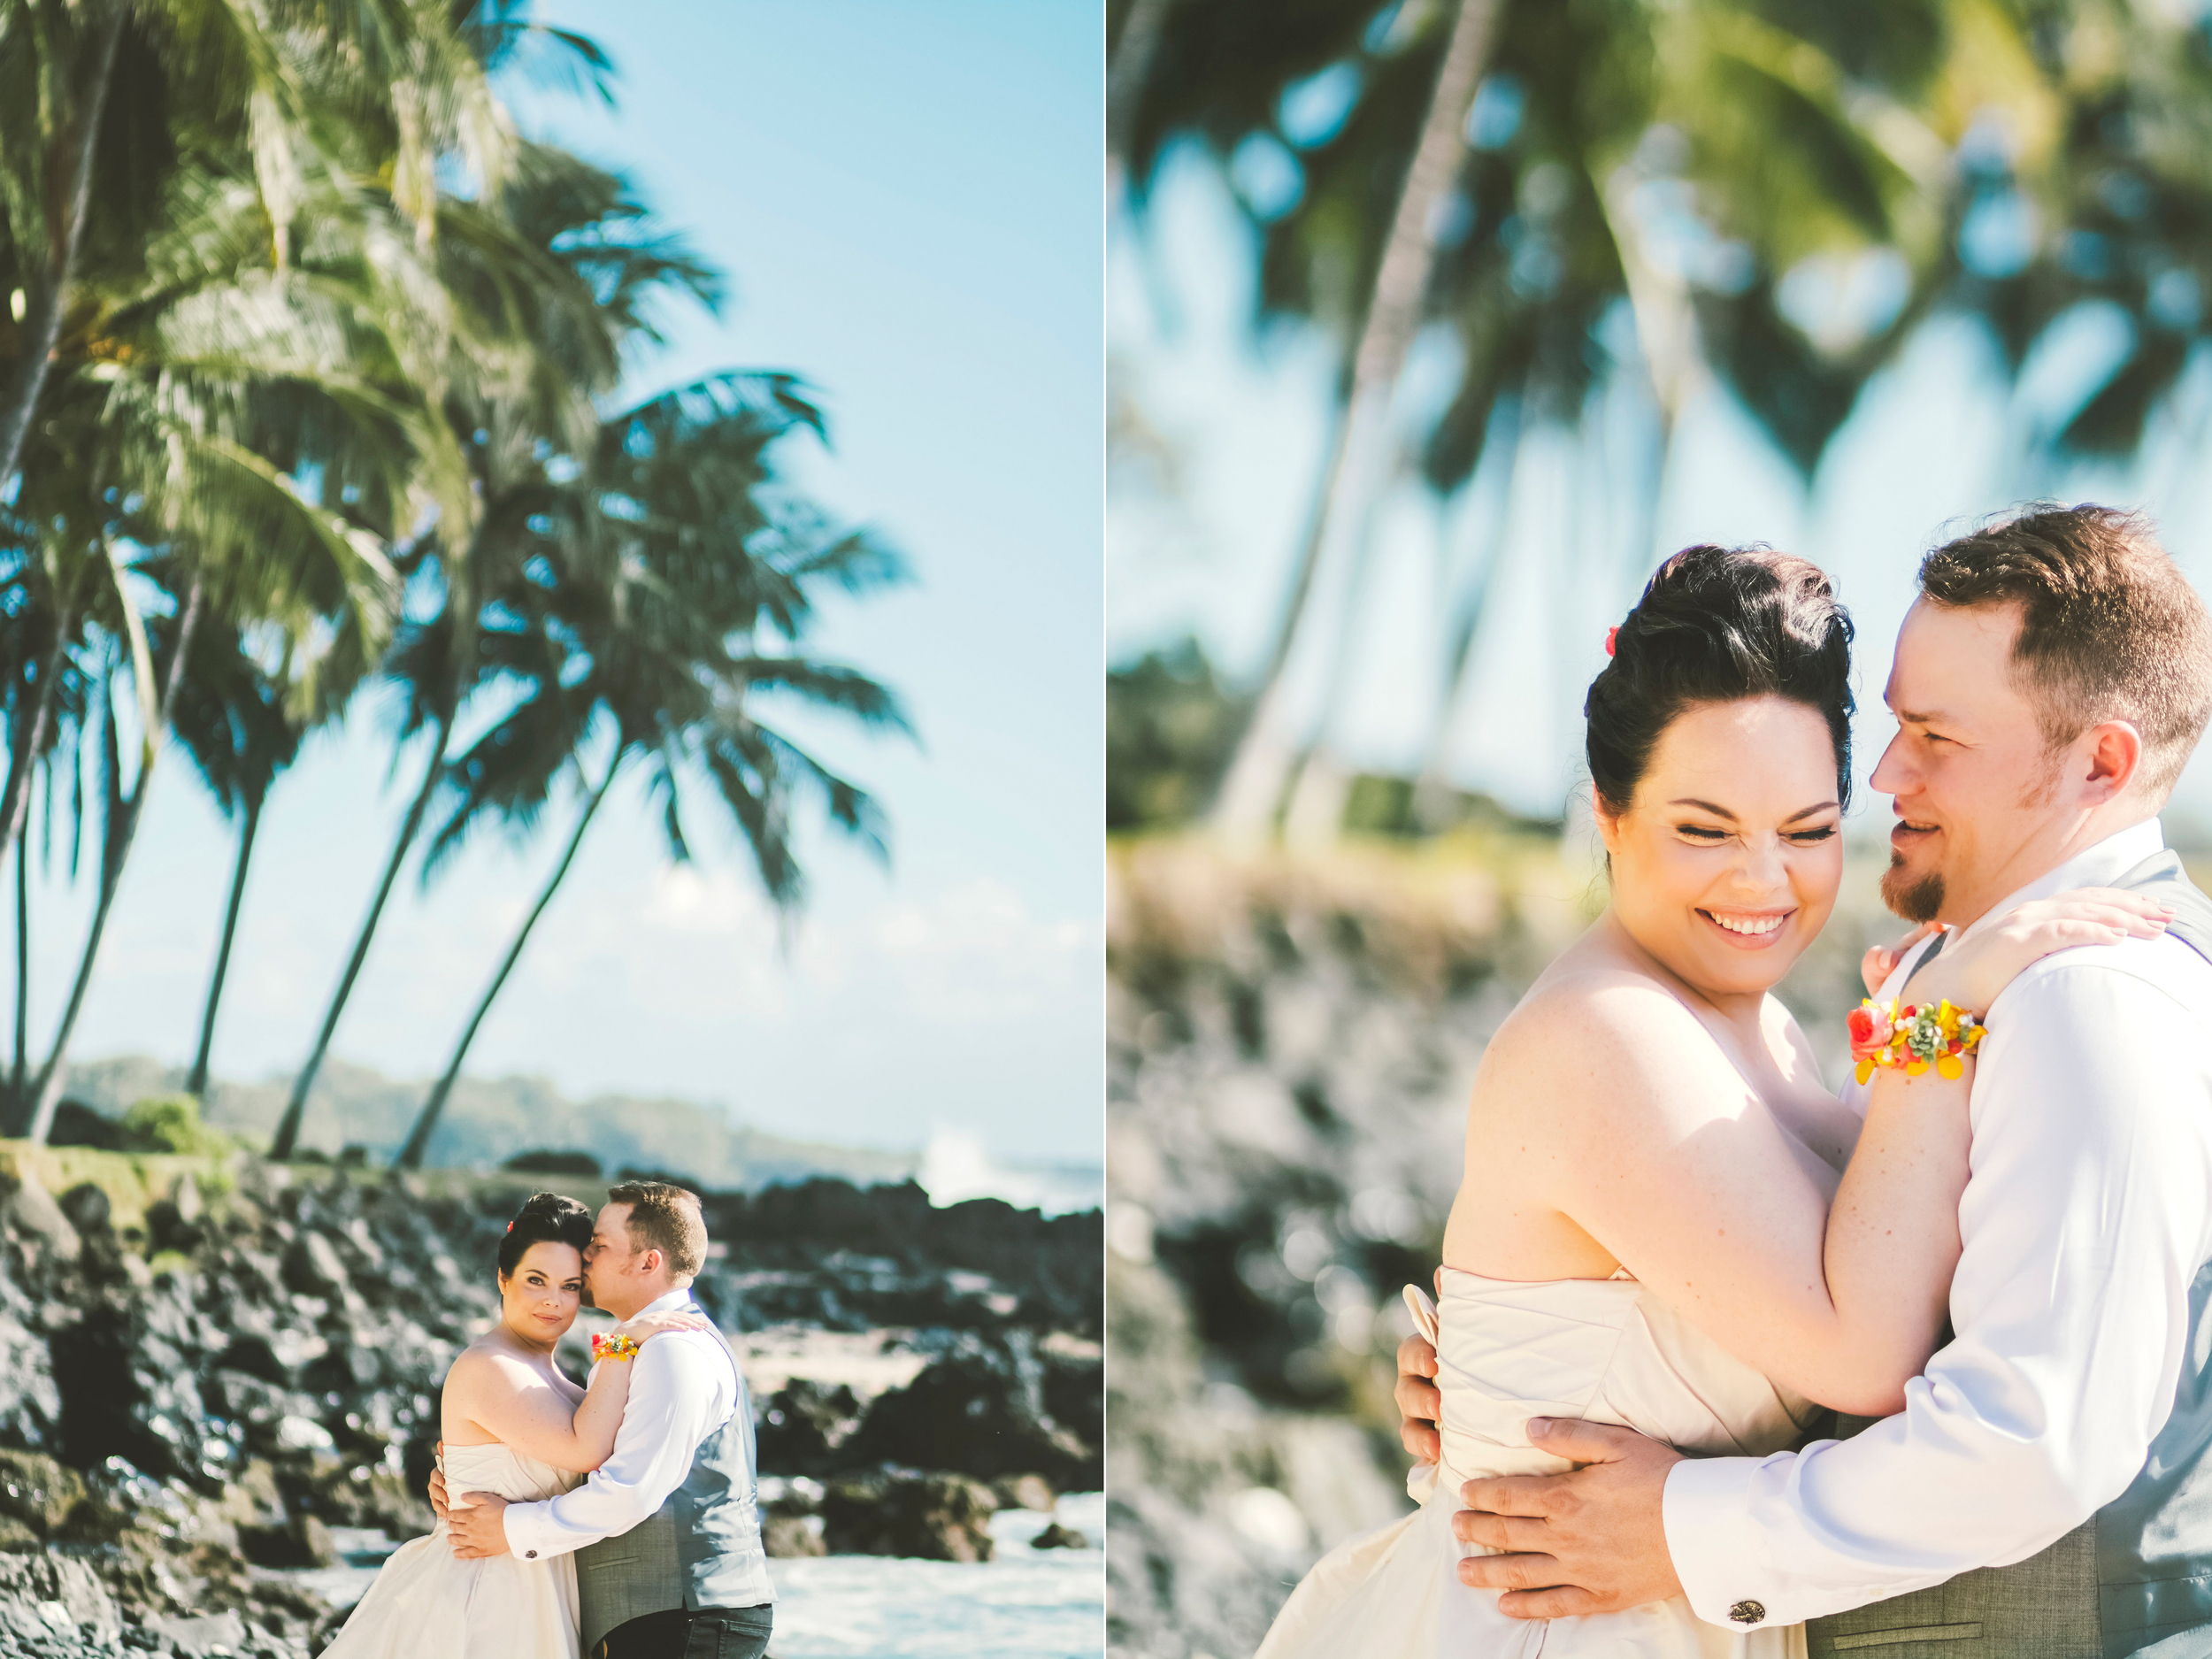 angie-diaz-photography-maui-elopement-36.jpg